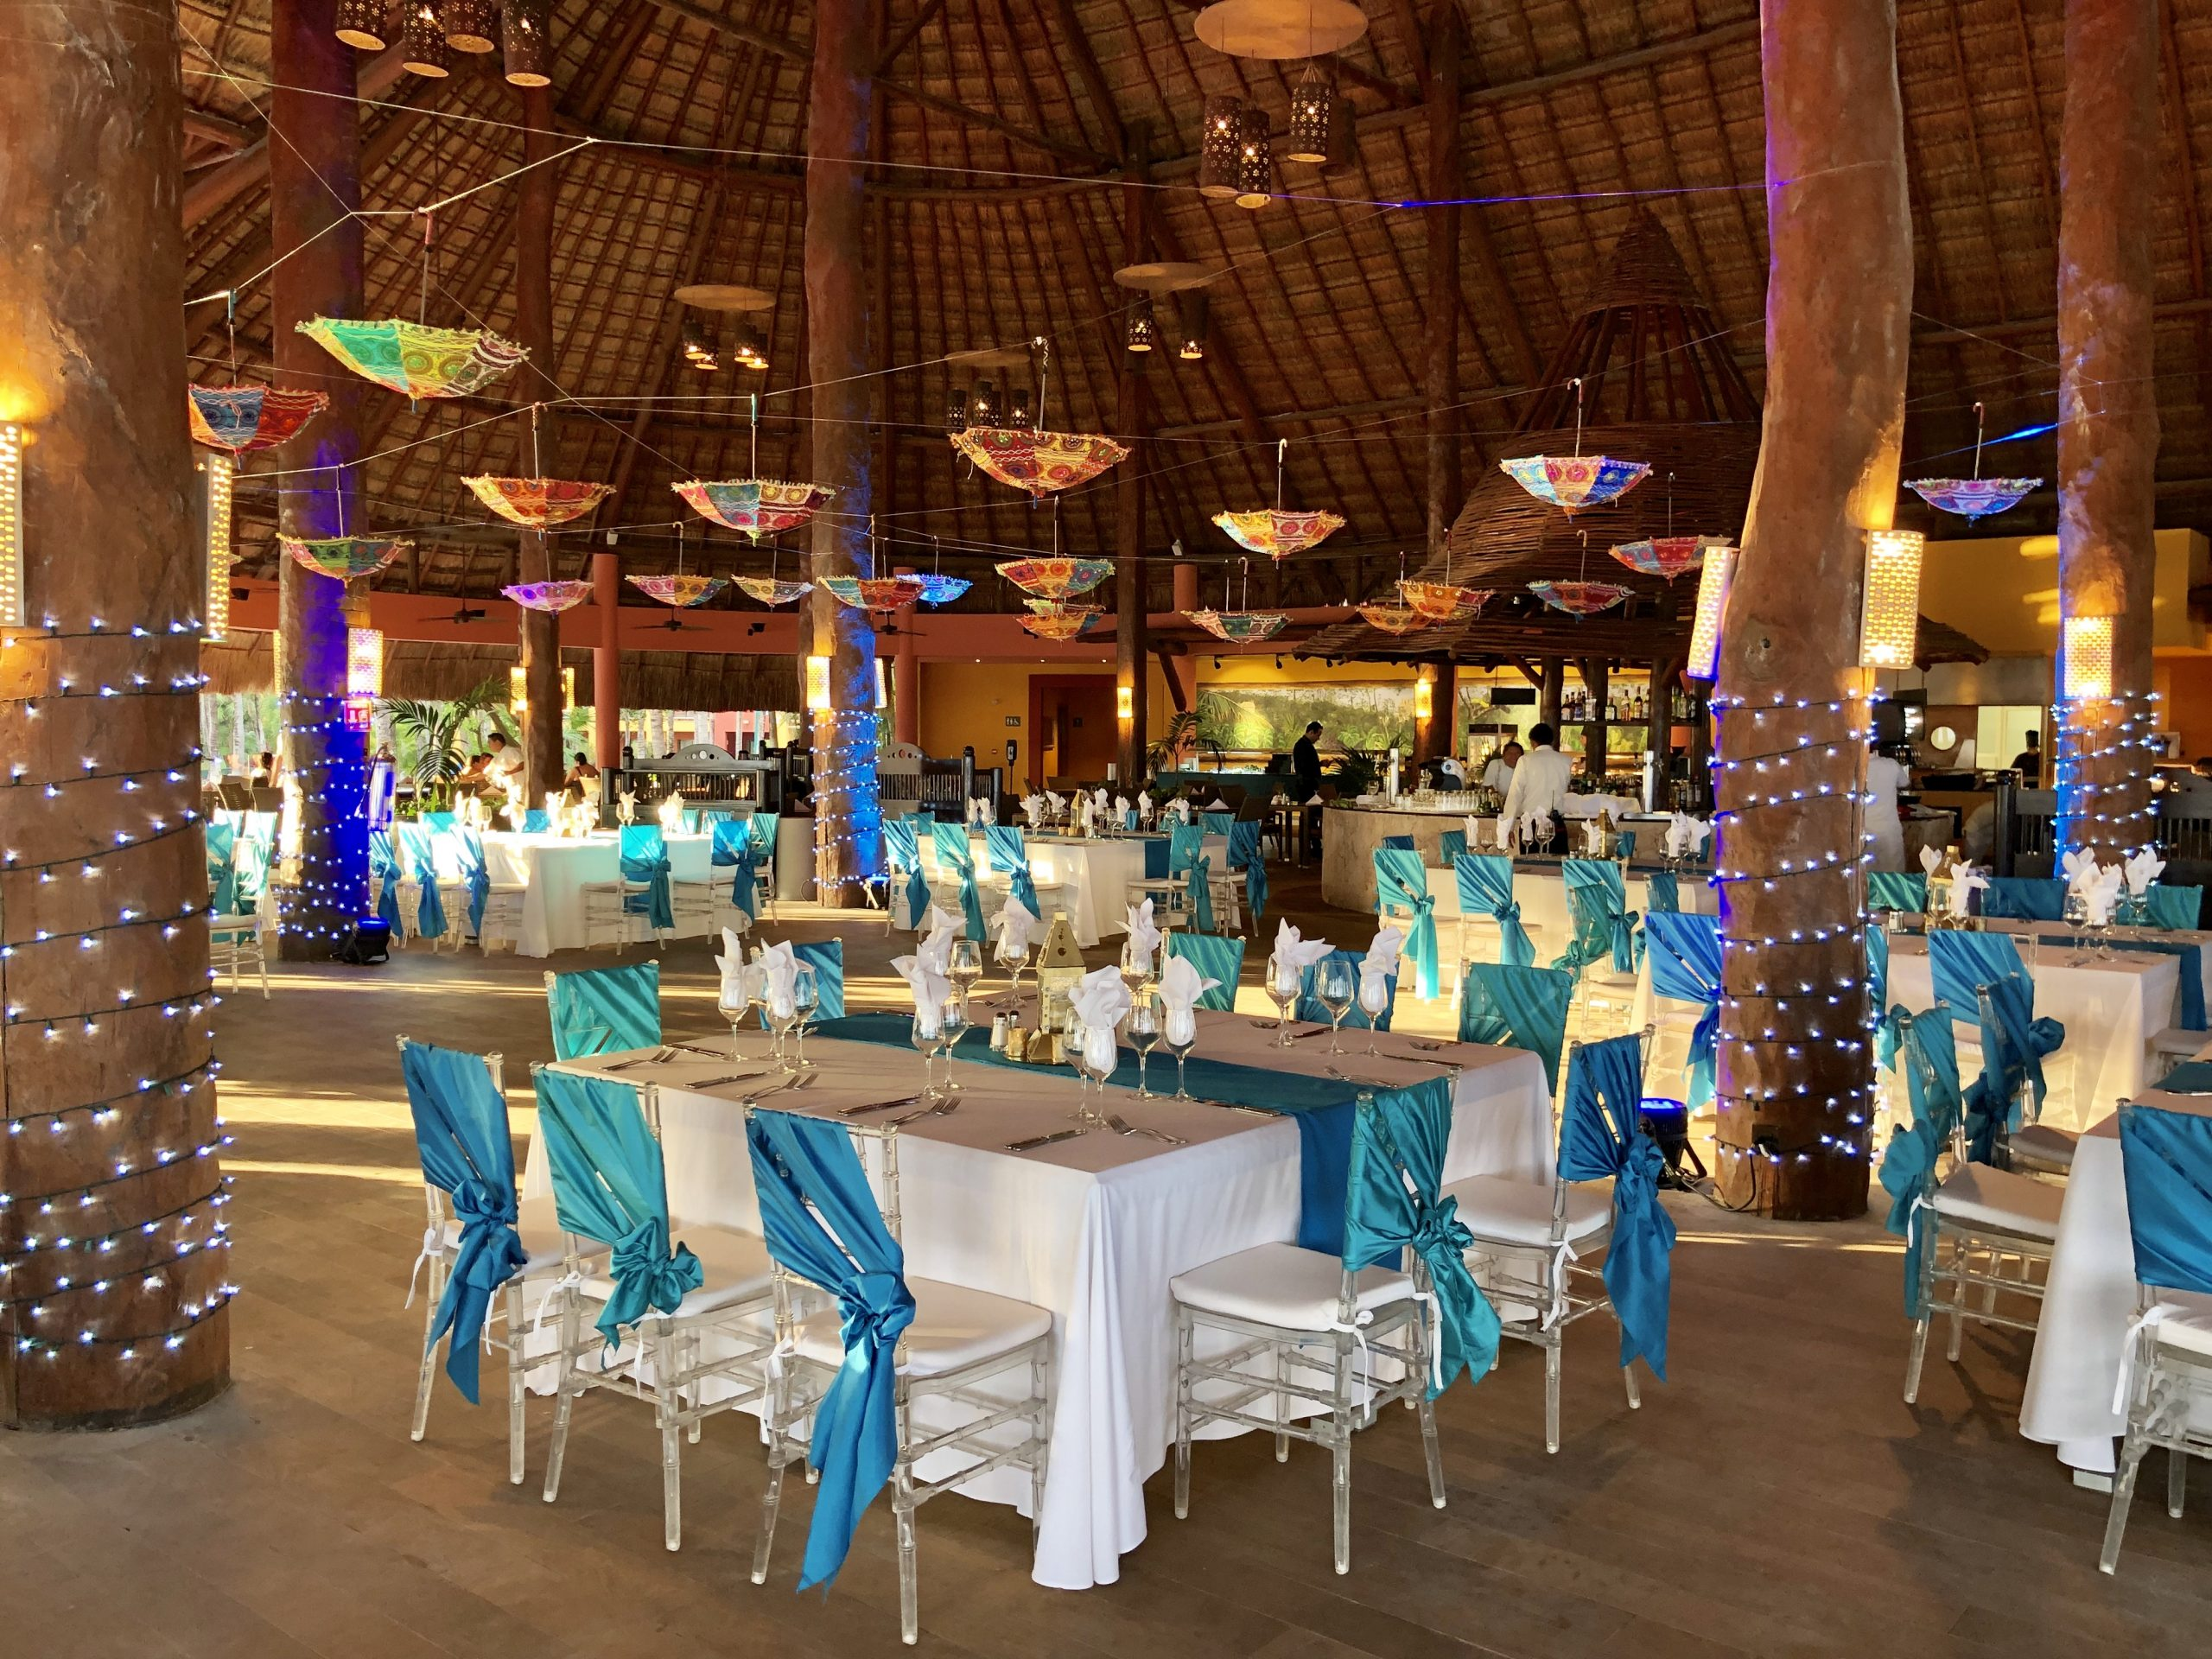 Prini wedding testimonial all inclusive wedding packages in cancun